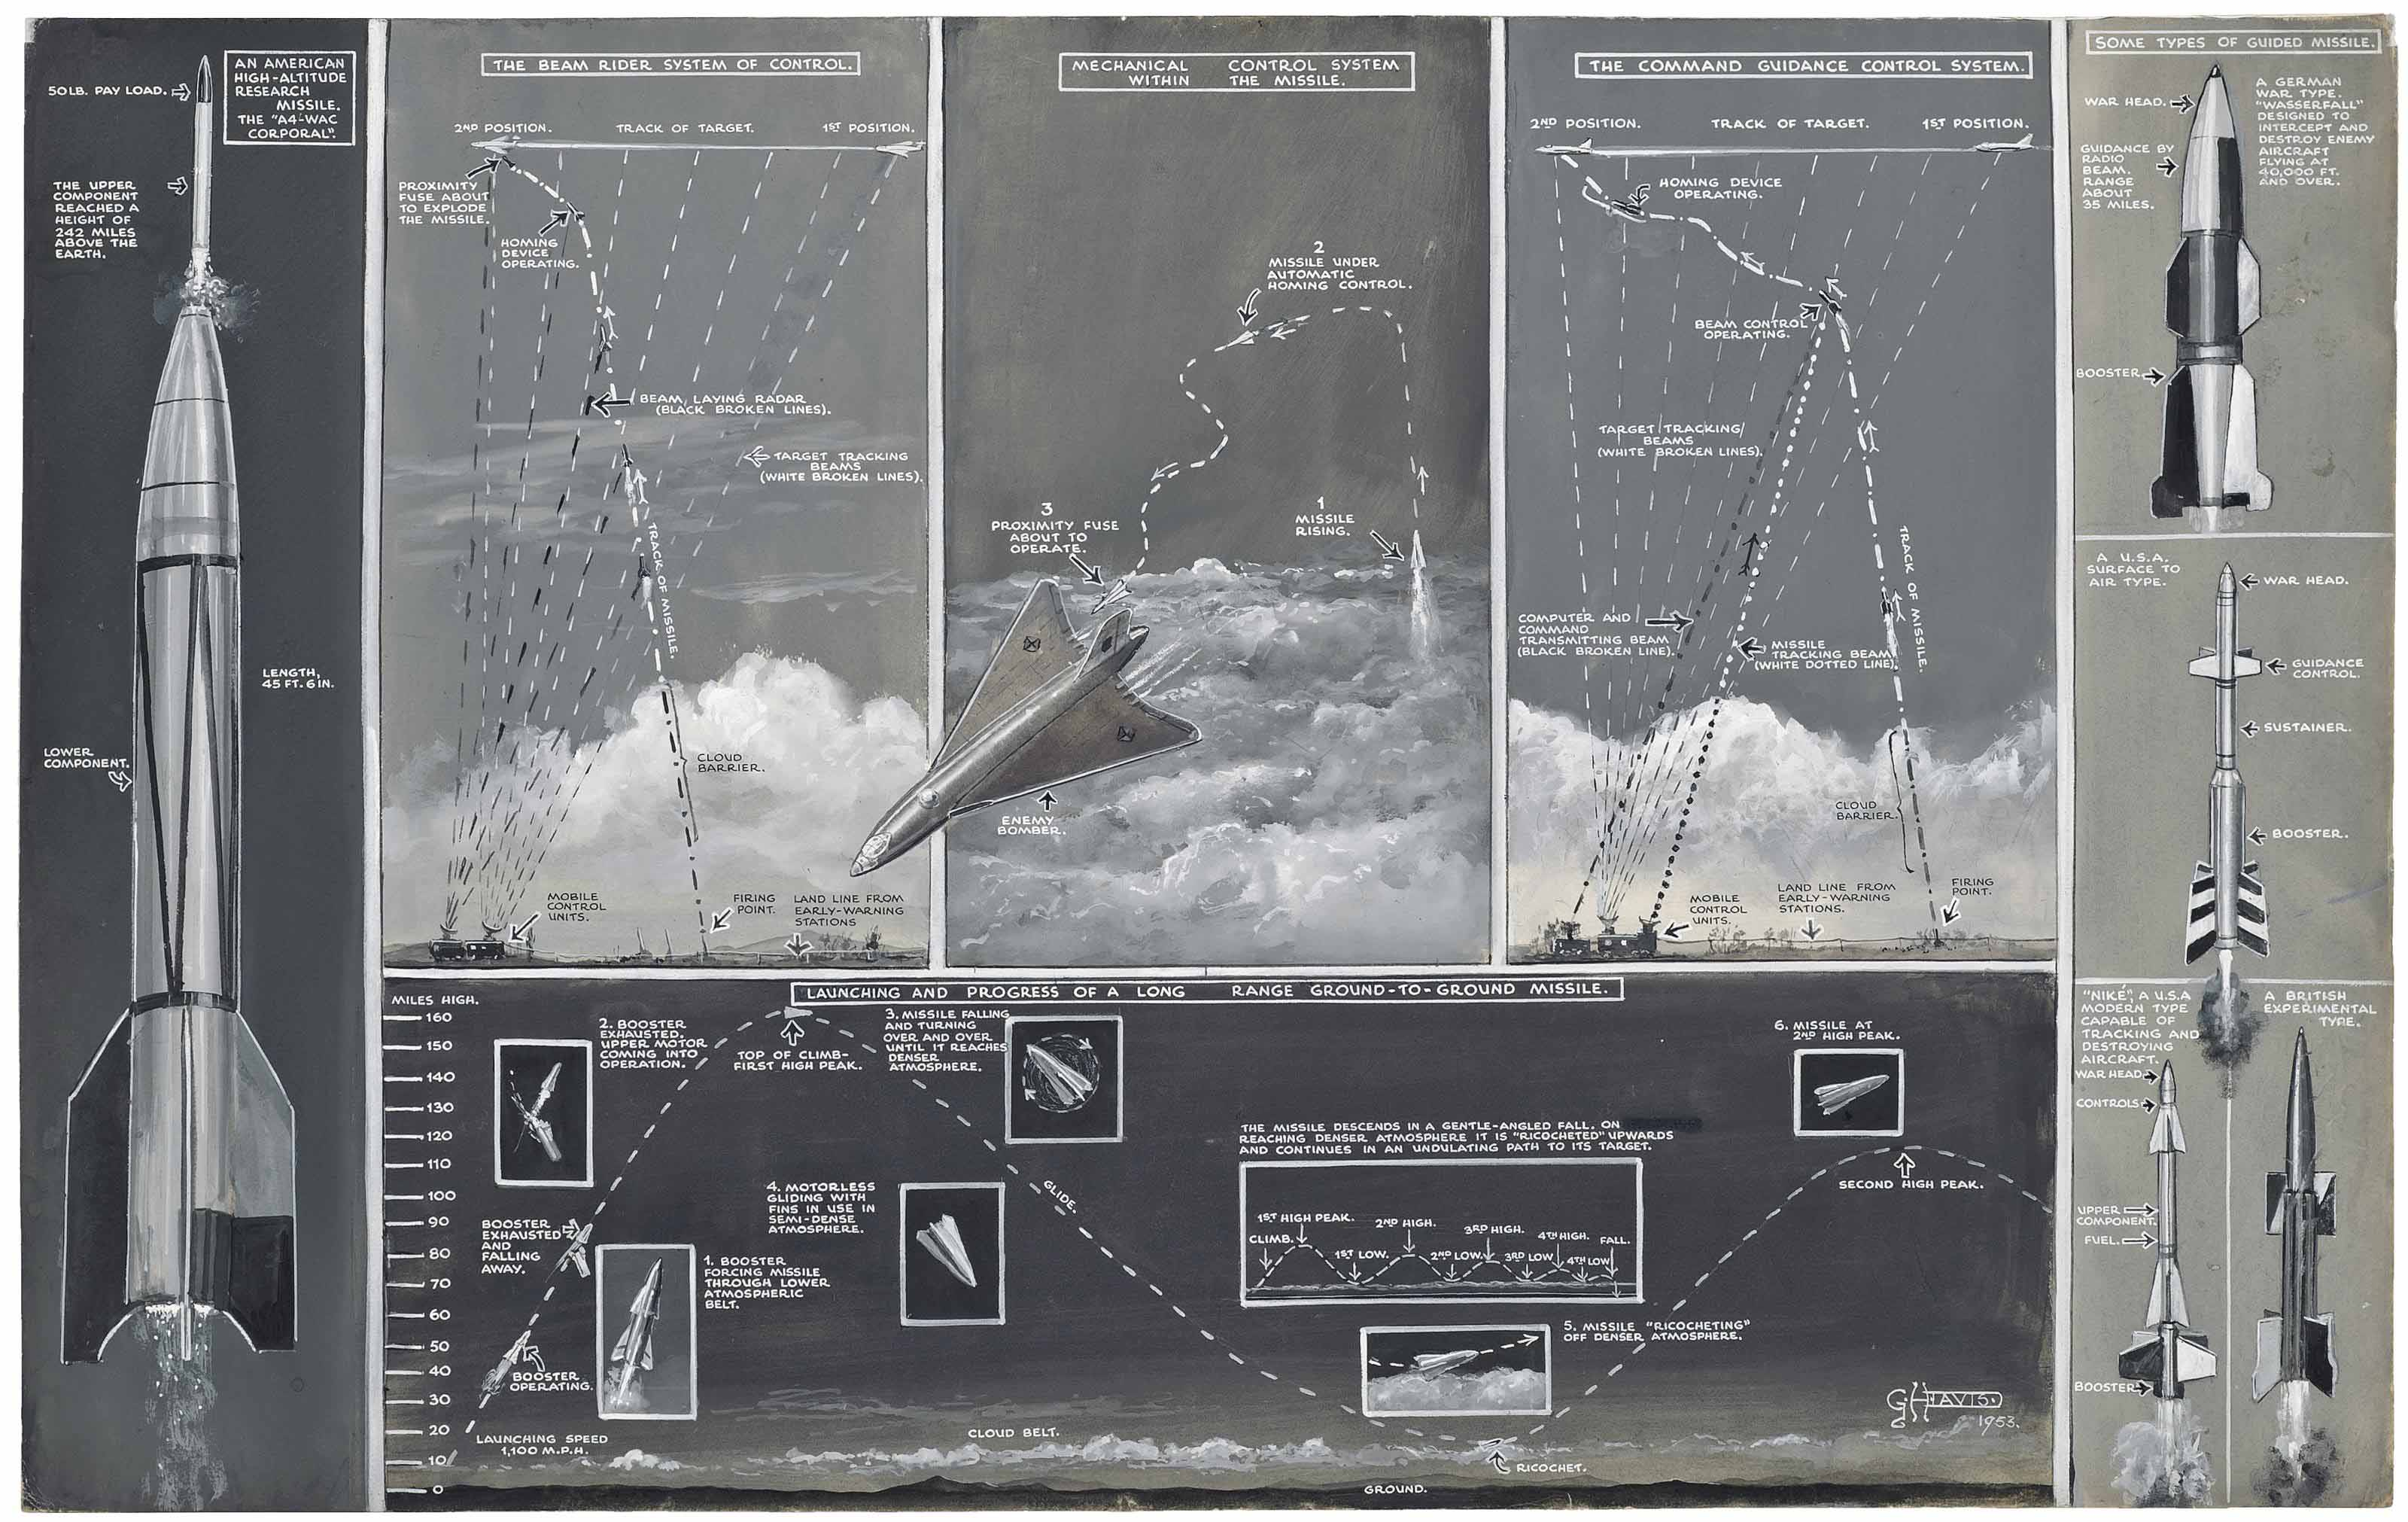 """Diagram of experimental rockets and guided missiles (illustrated); and A plan of a typical R.A.F. """"Bloodhound"""" guided missile weapon site"""